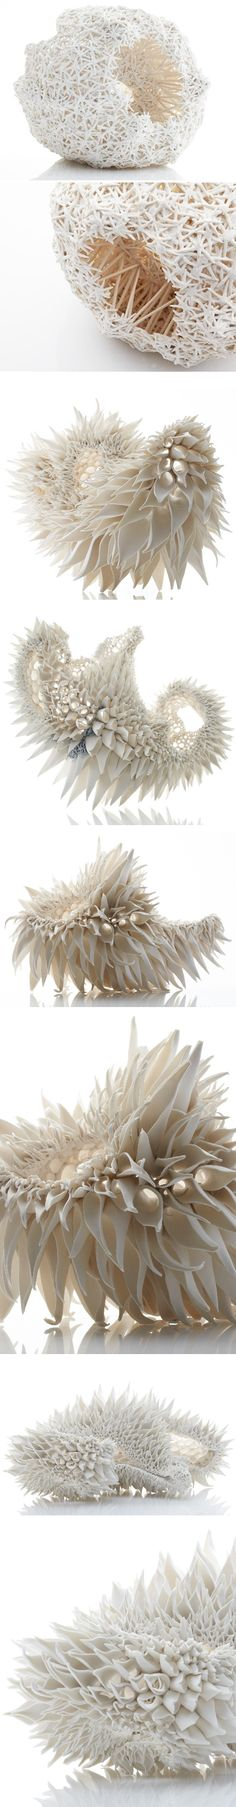 Nuala O'Donovan...organic ceramic pieces by Nuala O'Donovan, an artist based in Cork, Ireland.